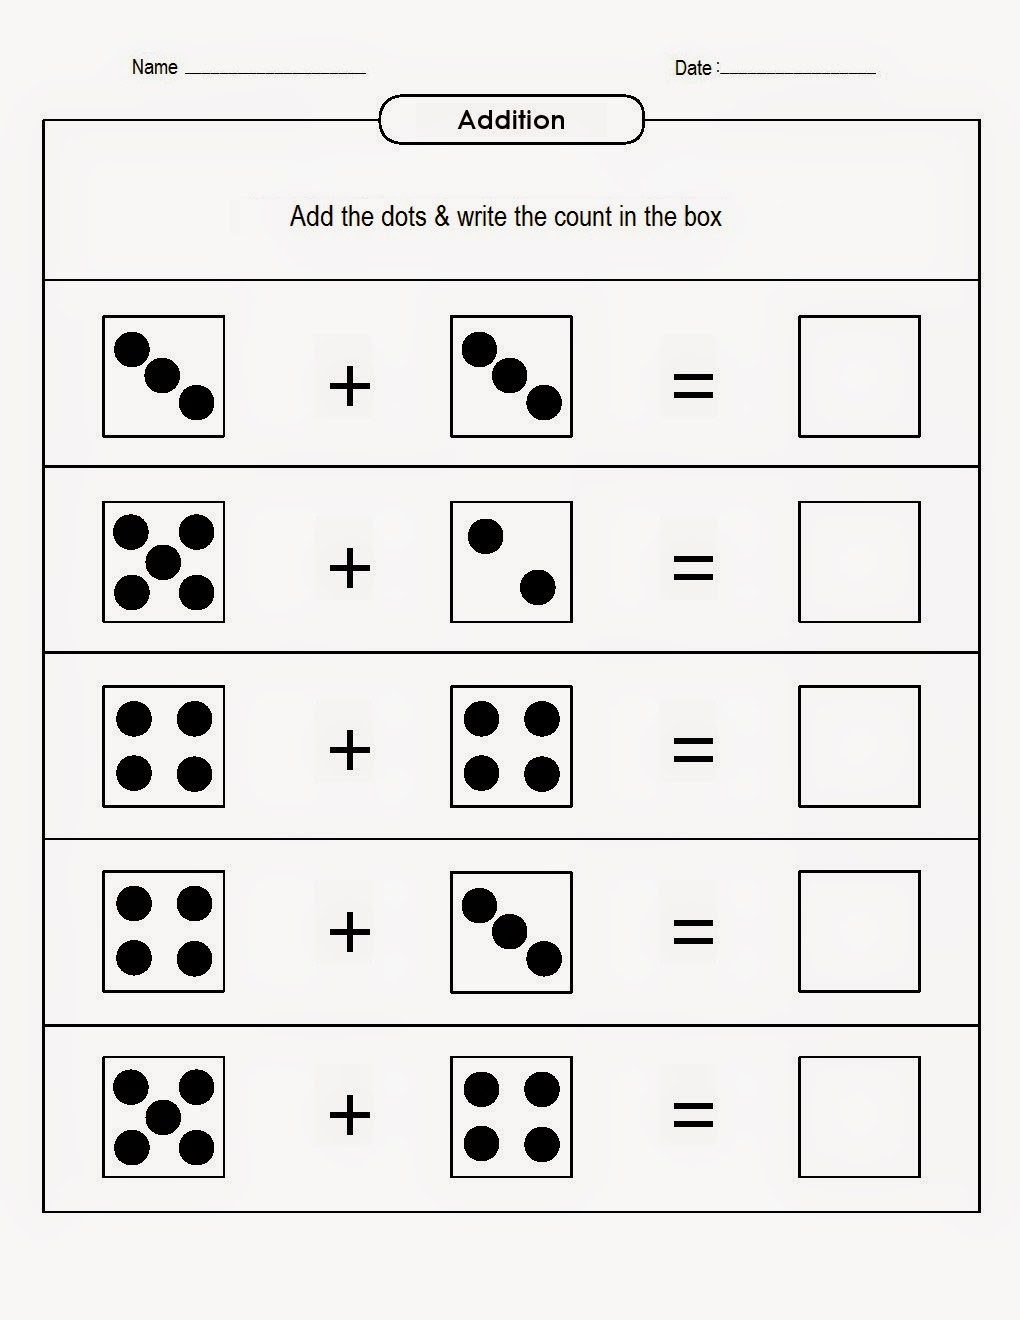 kindergarten worksheets maths worksheets addition with dots worksheets 6. Black Bedroom Furniture Sets. Home Design Ideas